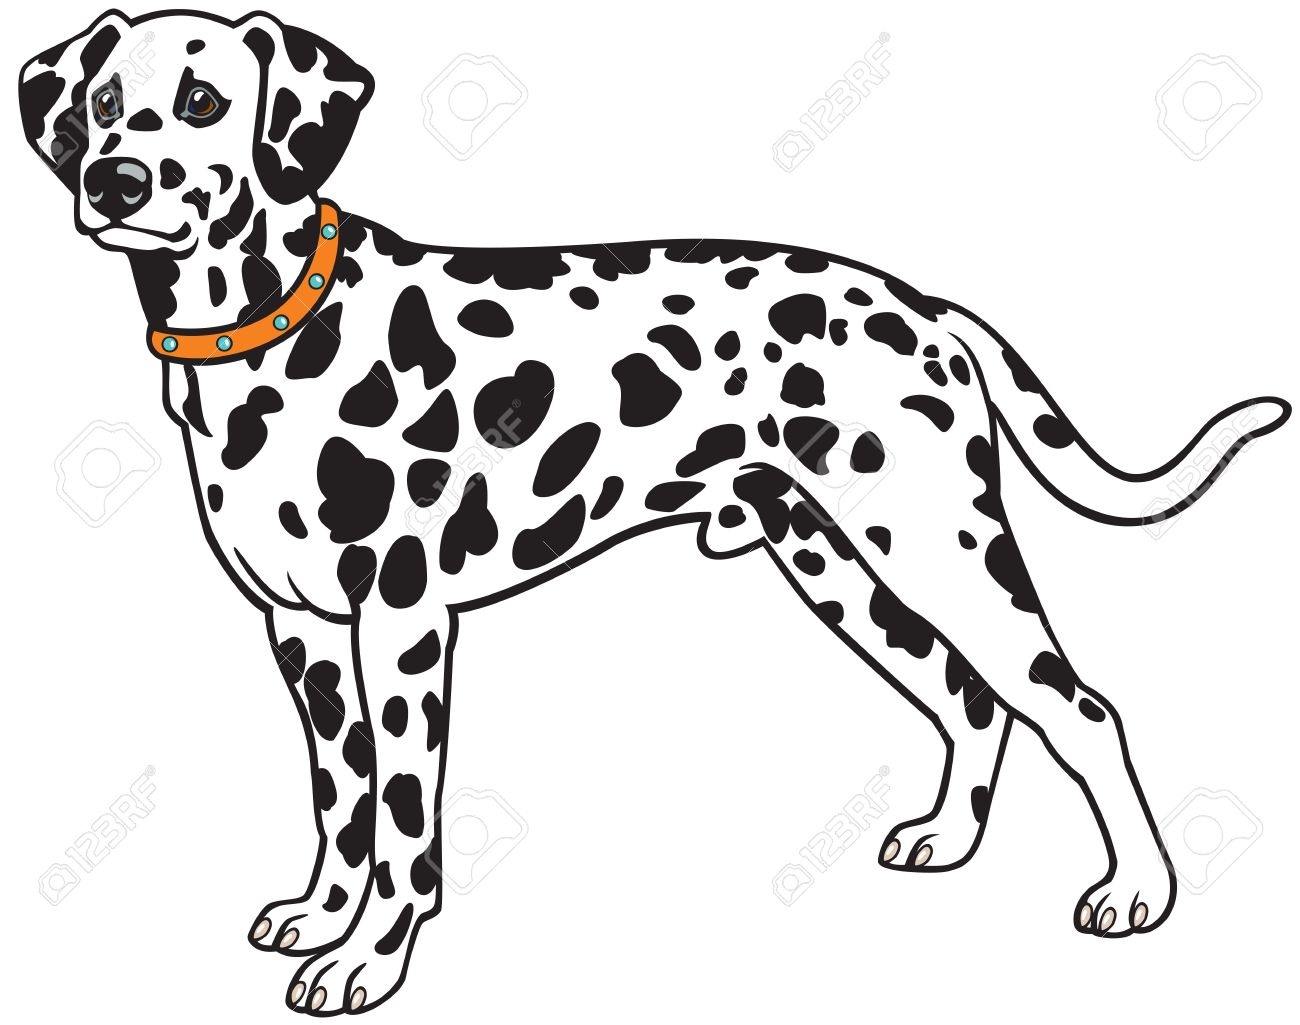 dalmatian dog breed,vector picture isolated on white background Stock Vector - 16565246